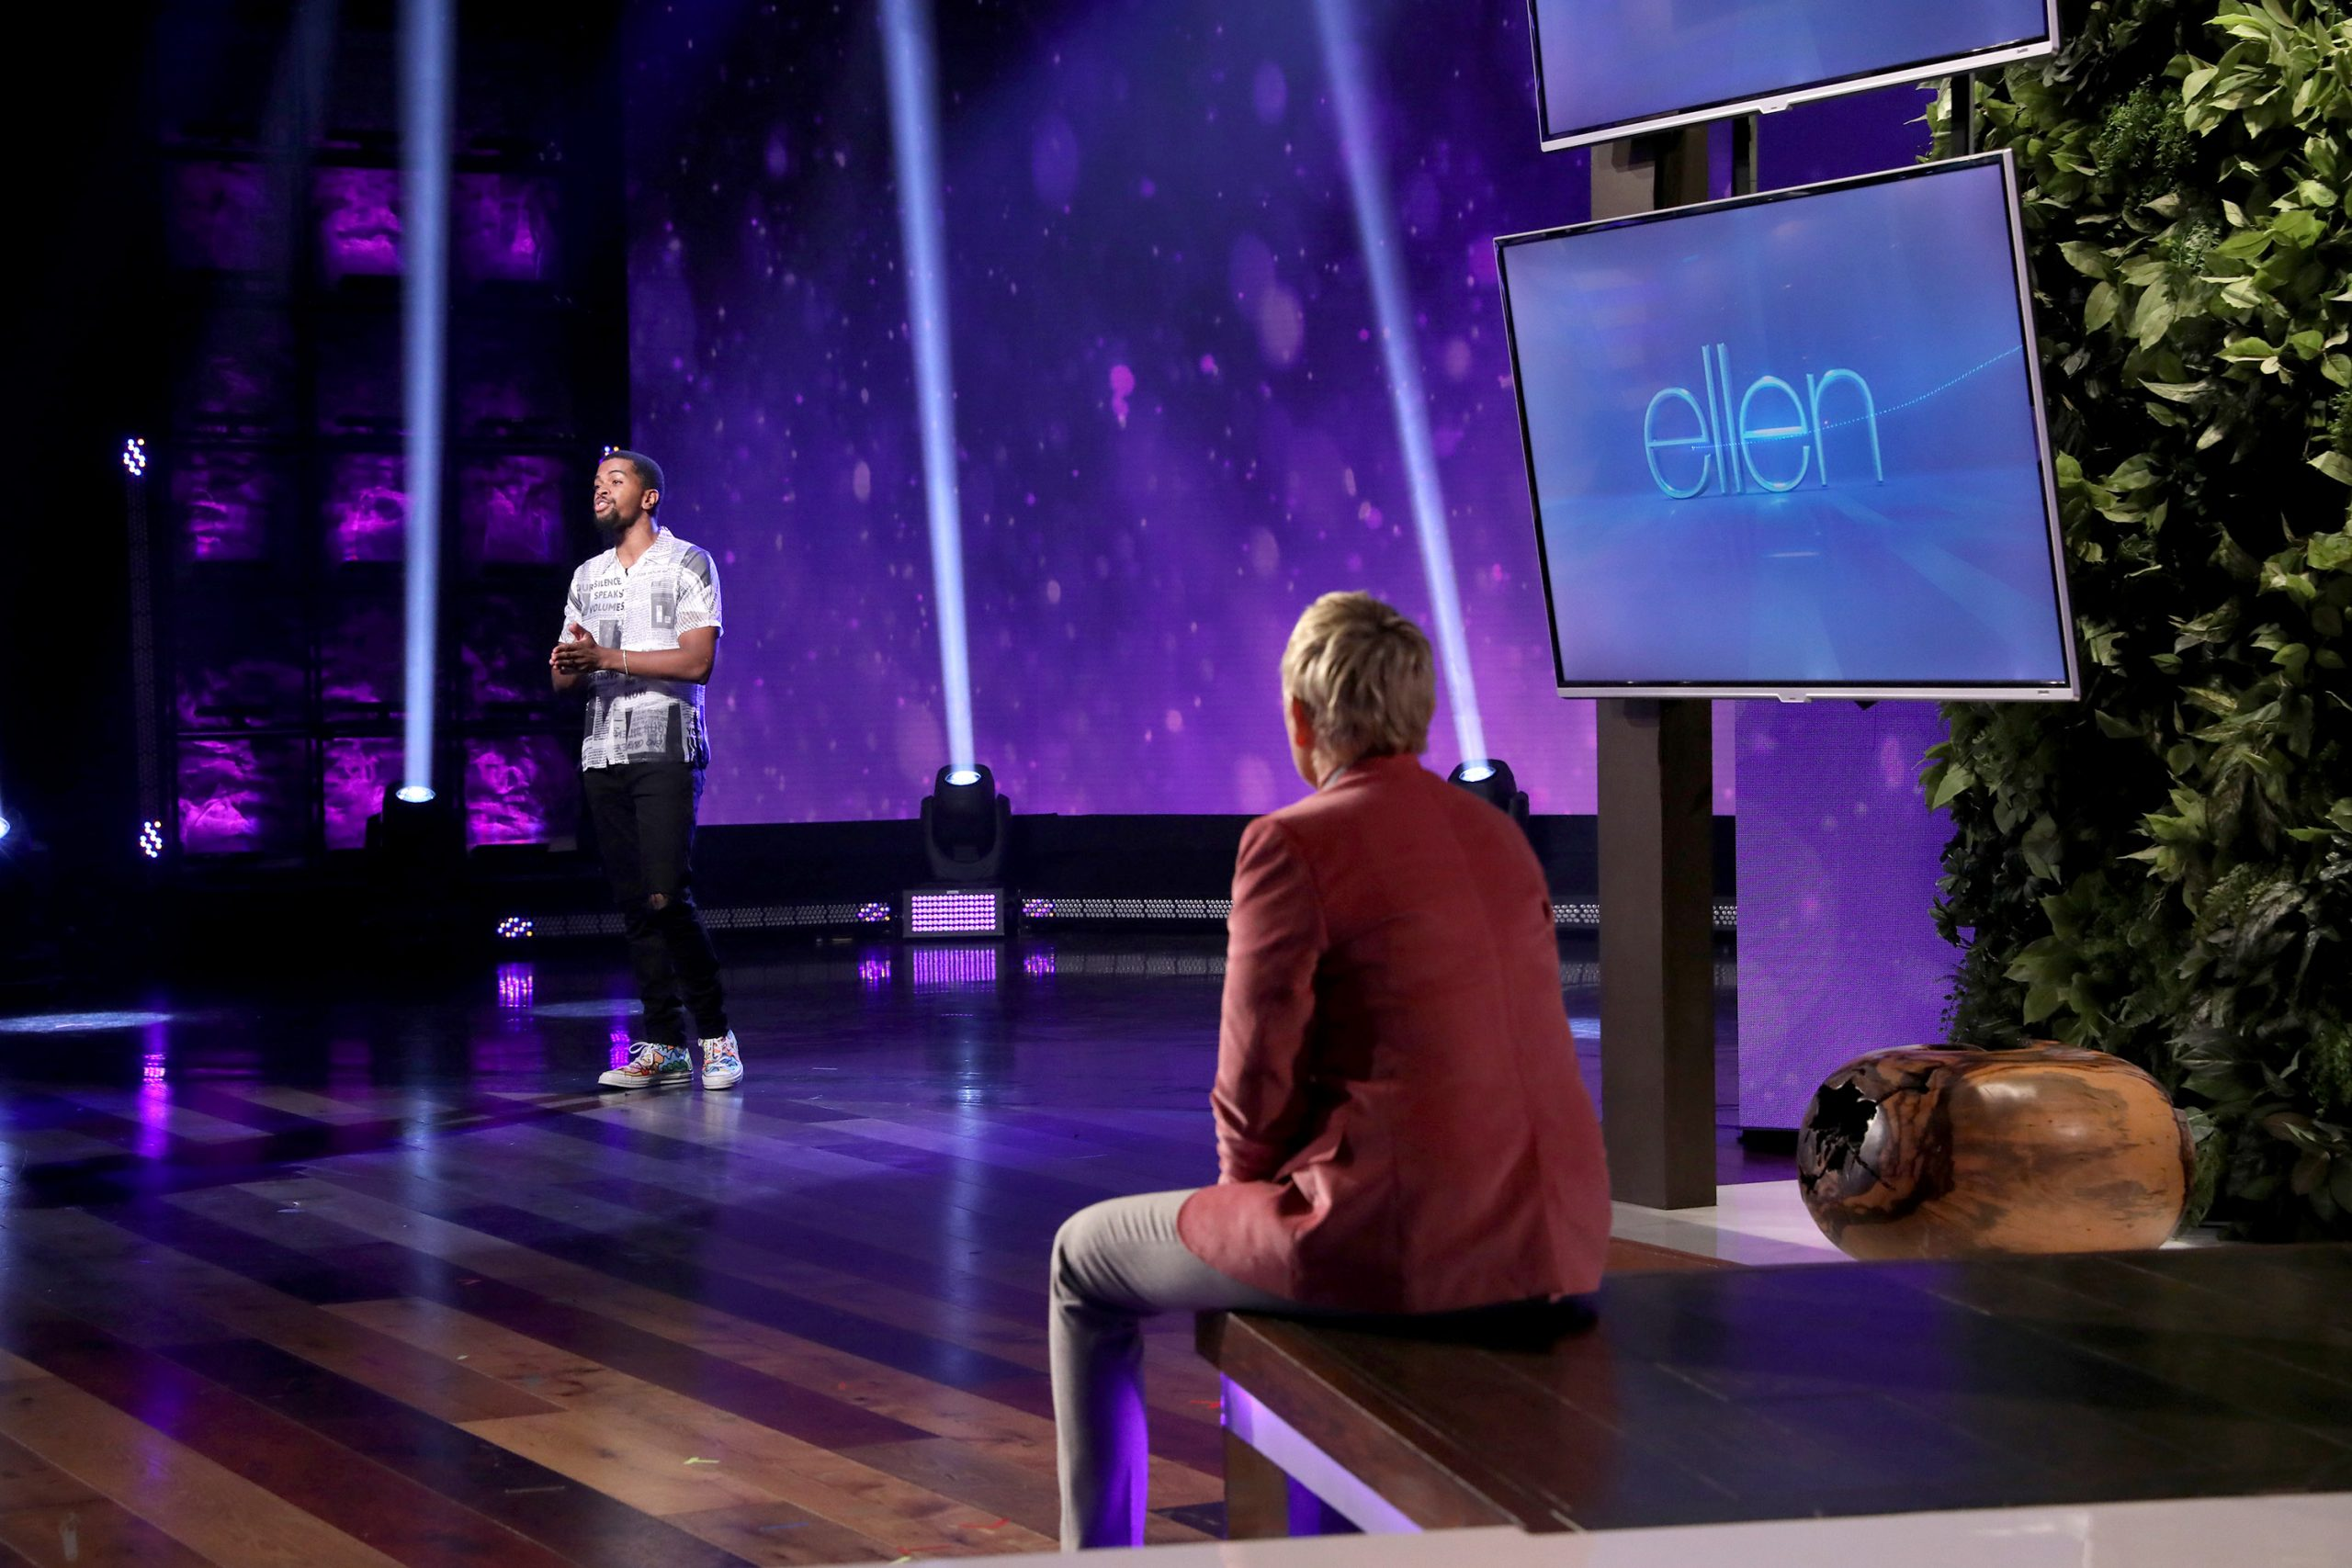 America S Got Talent Winner Brandon Leake Dedicates Poem To Breonna Taylor On Ellen Degeneres Show Watch Now